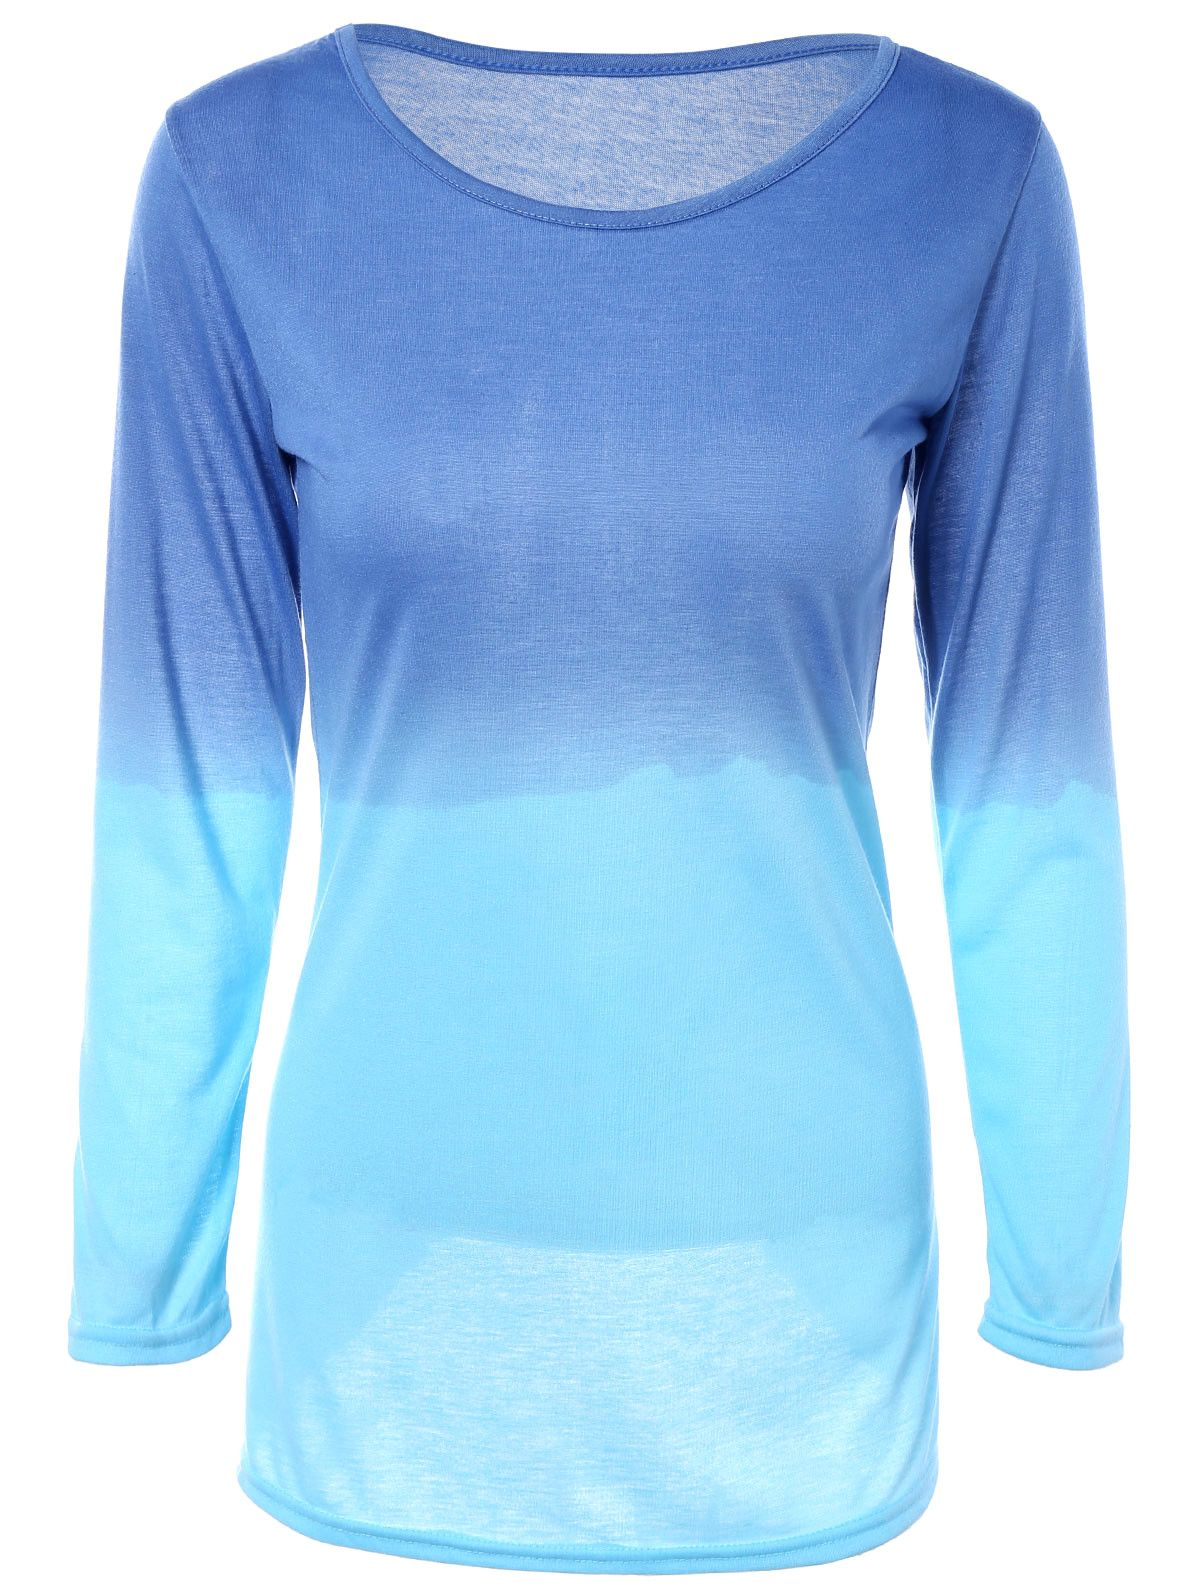 Gradient color round collar long sleeve tshirt dress blue s